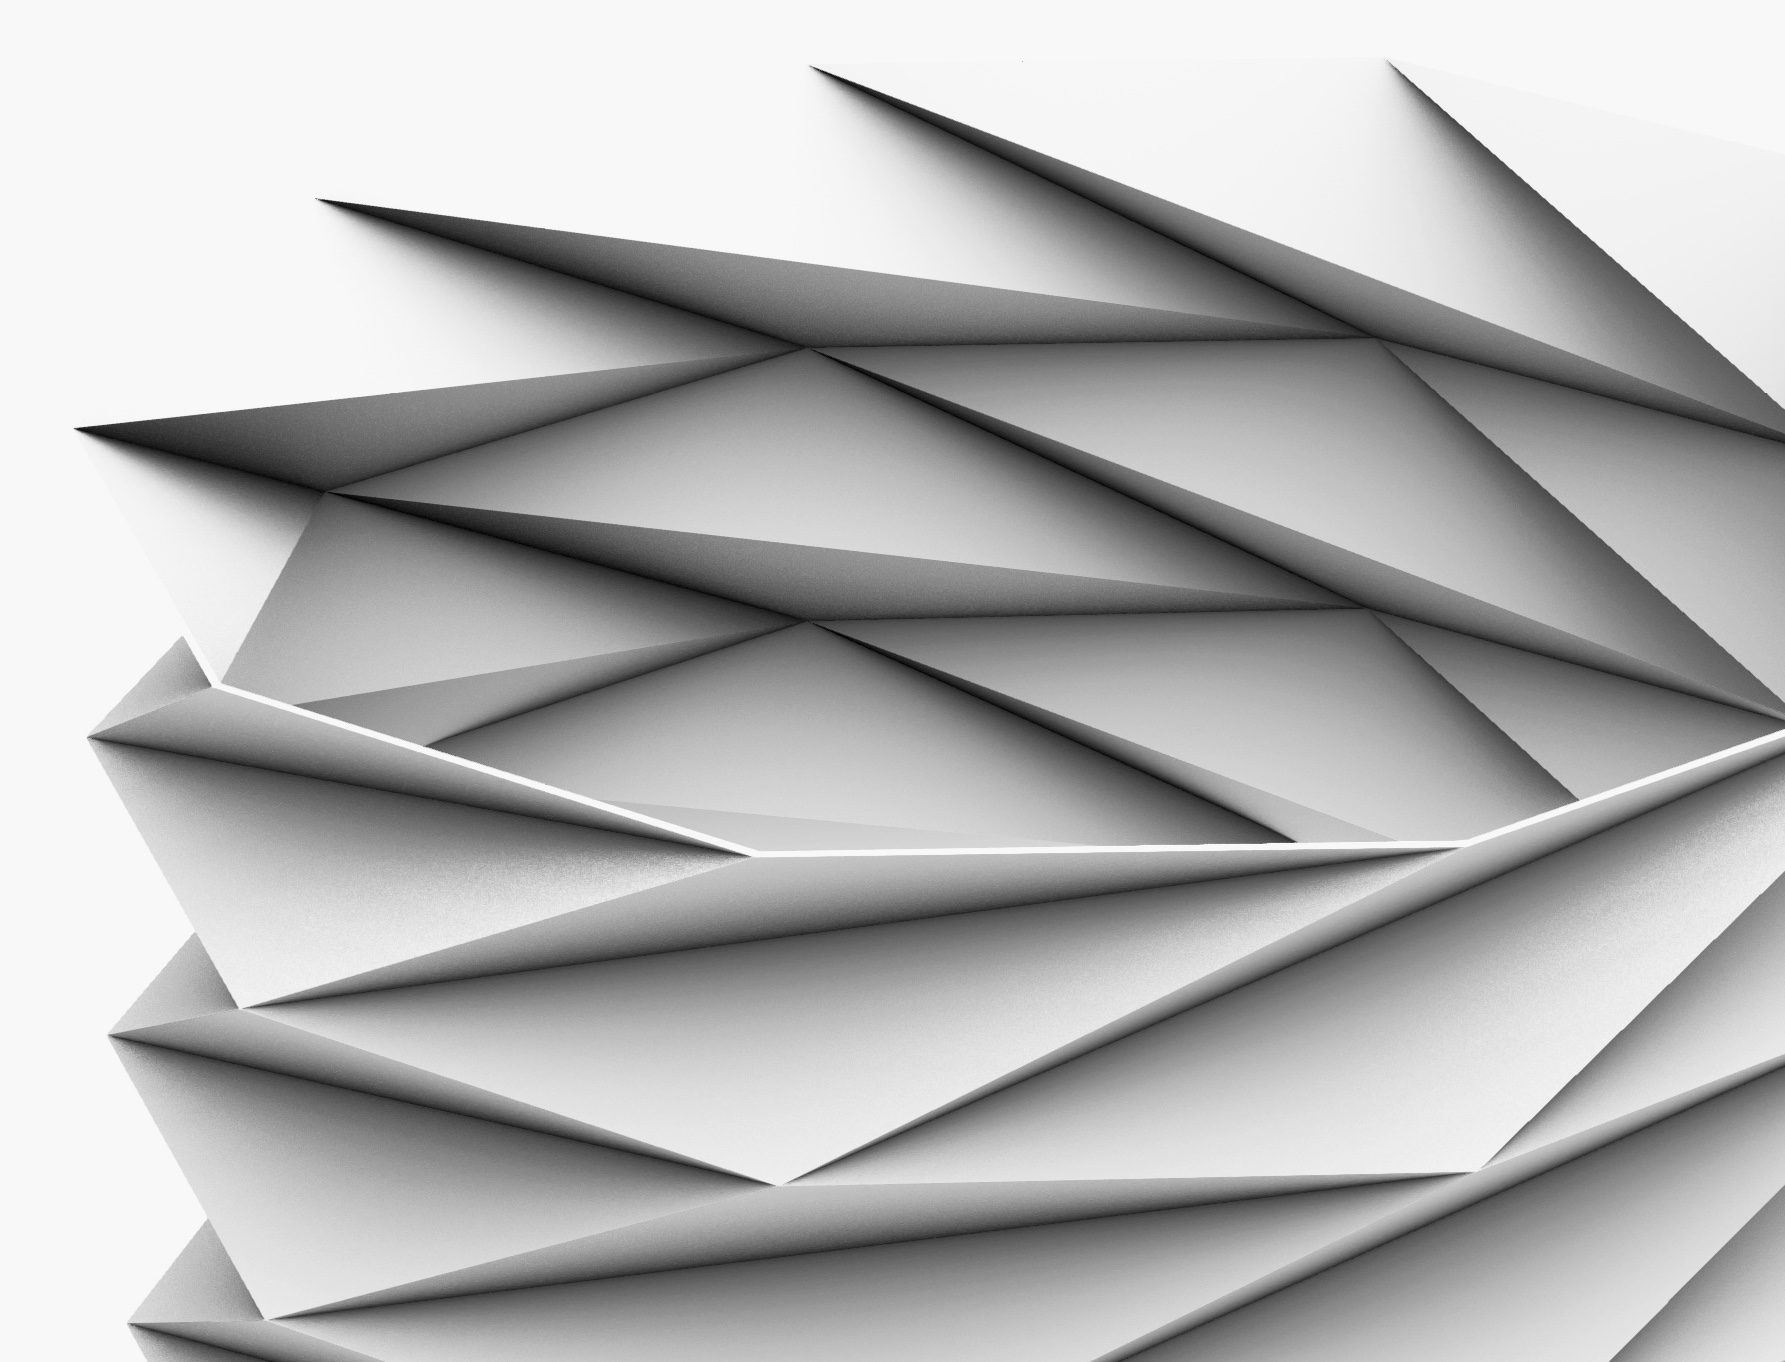 Unfolding the Origami